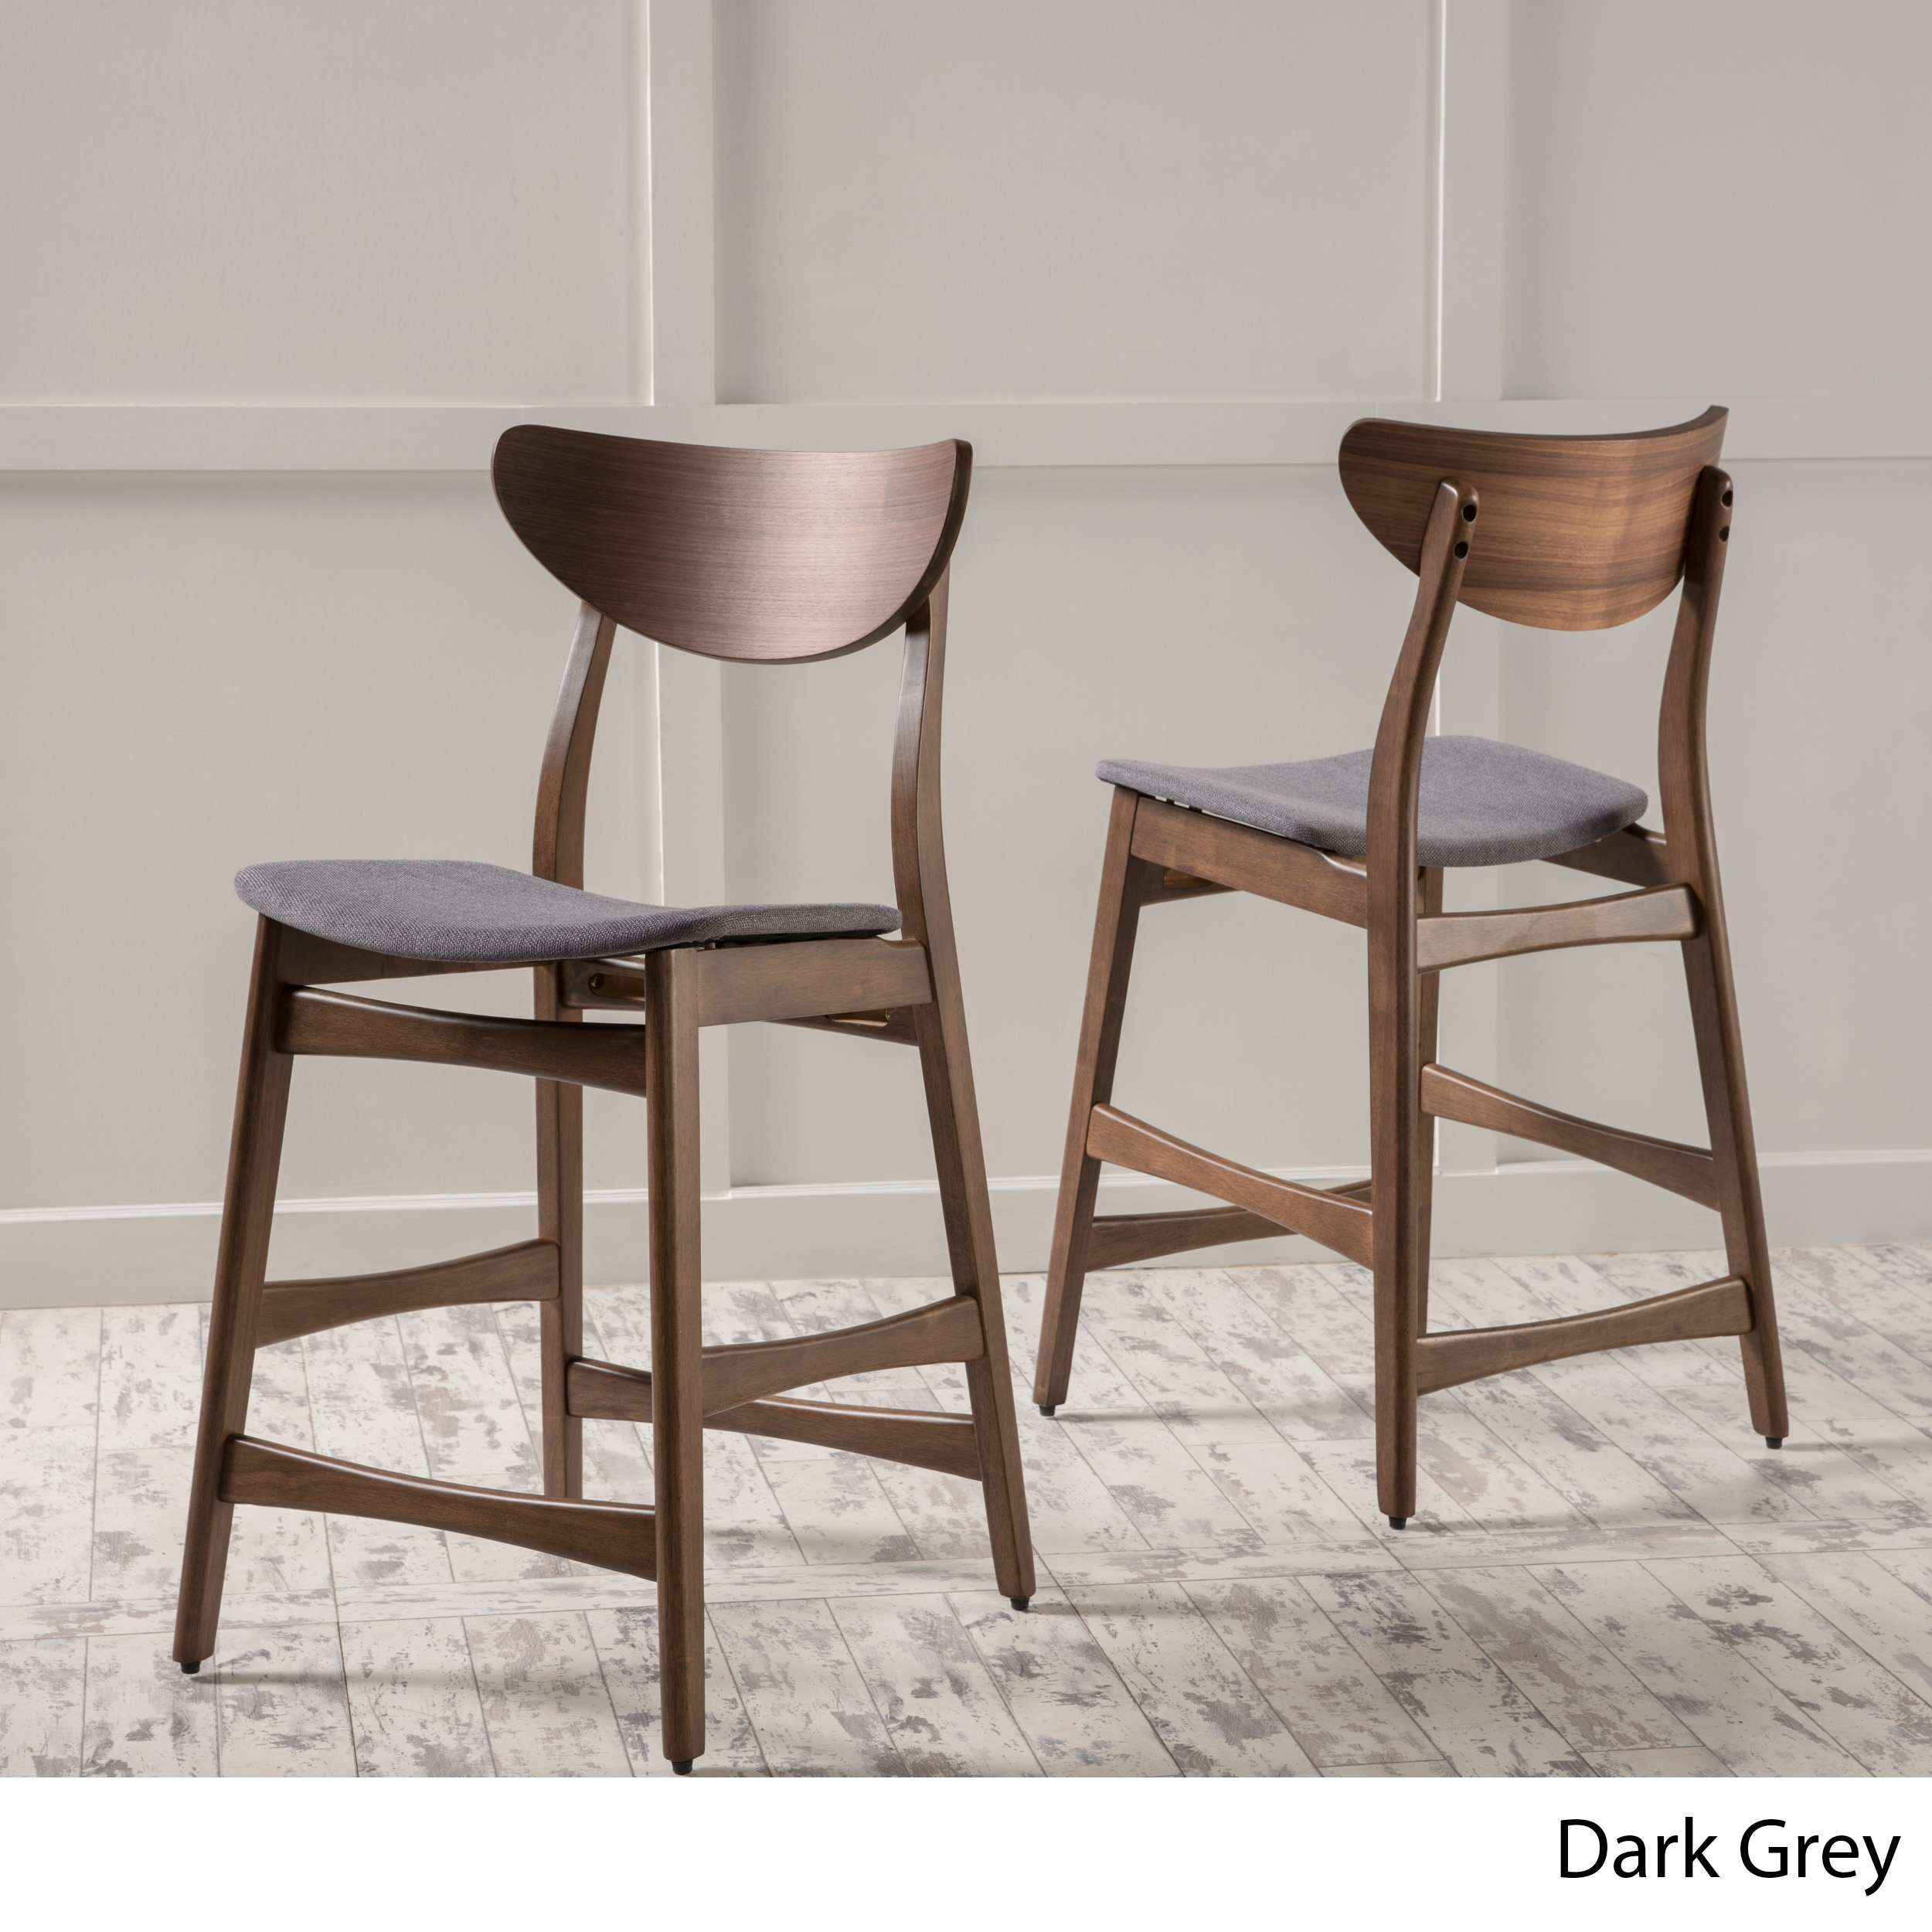 Swell Molle Mid Century Design 24 Inch Counter Stools Set Of 2 Caraccident5 Cool Chair Designs And Ideas Caraccident5Info